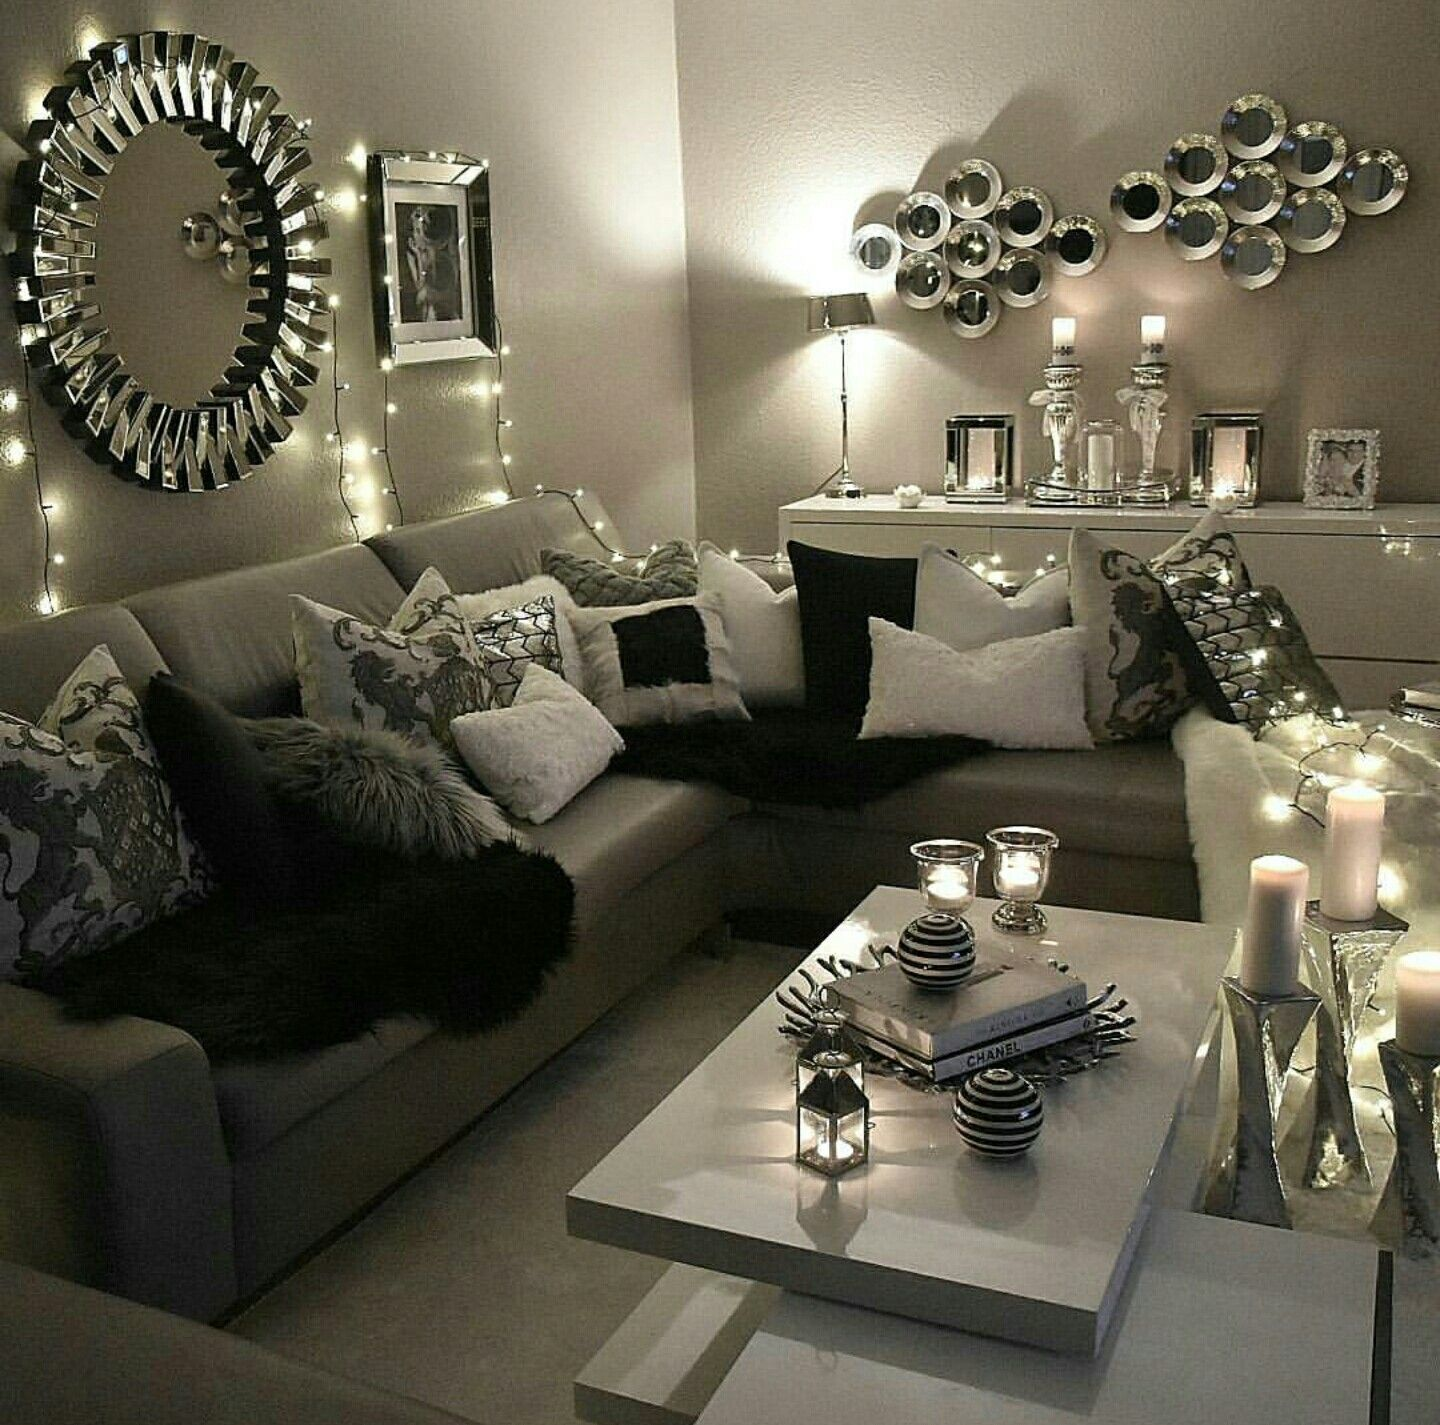 Pin de yanda baby en Living Room Glam | Pinterest | Decoraciones ...